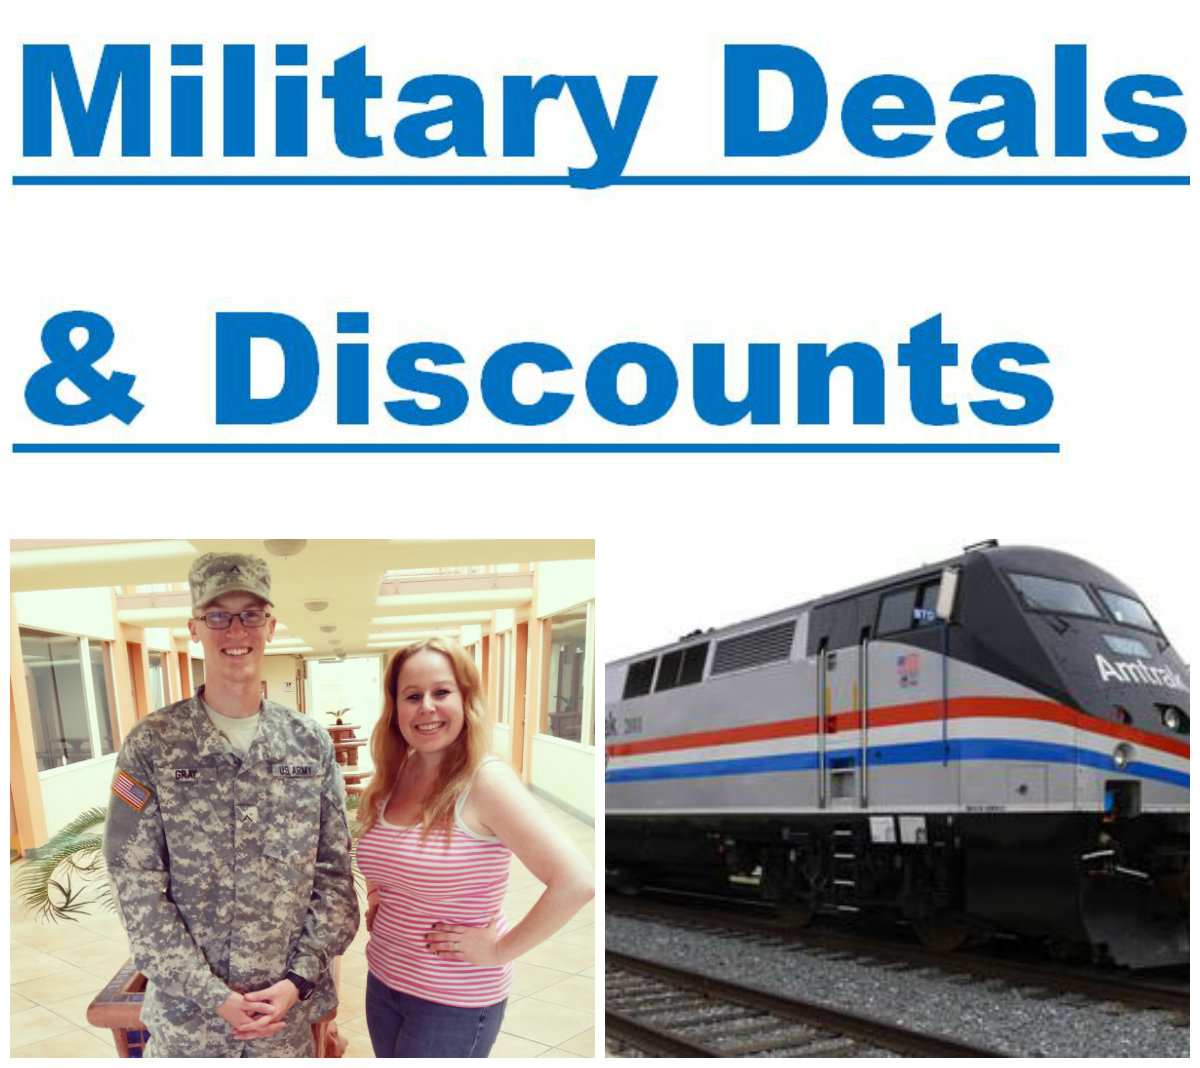 Jan 16,  · military discounts msand Jun 17, PM I jwas told by a family member that Verizon offers Veteran Military Discount of 15% off if you have a .